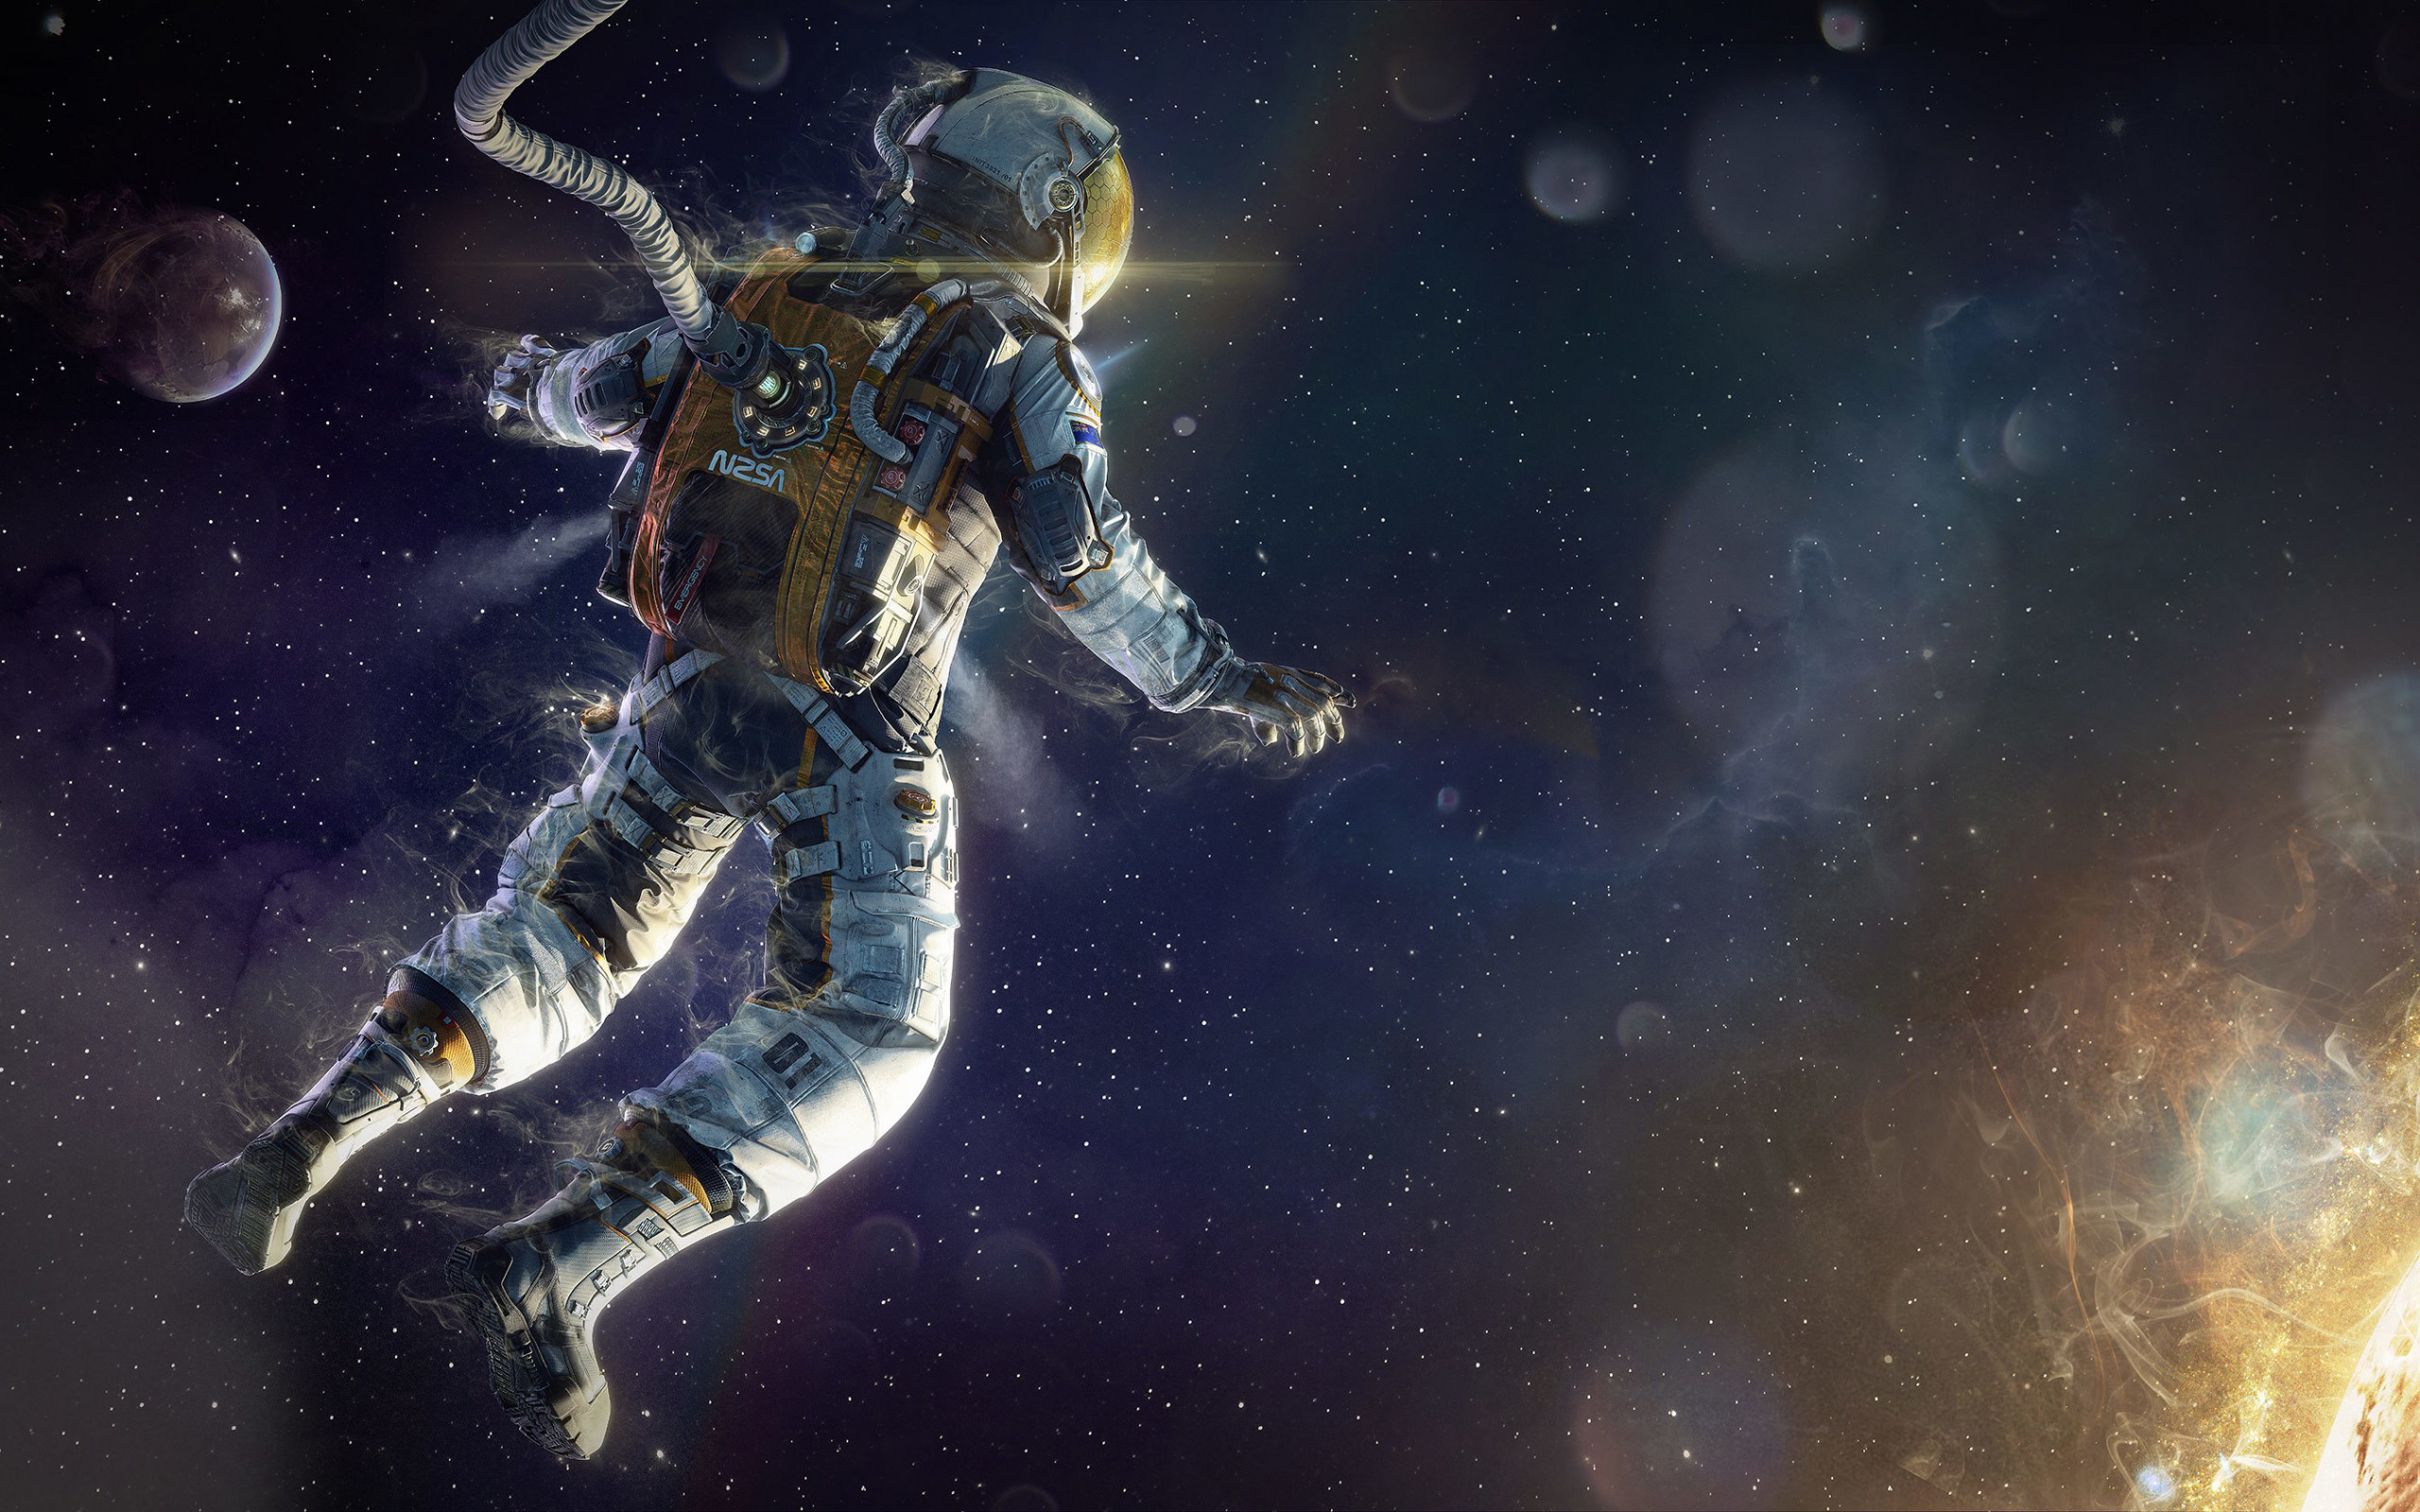 HD Astronaut Wallpaper (70+ Images